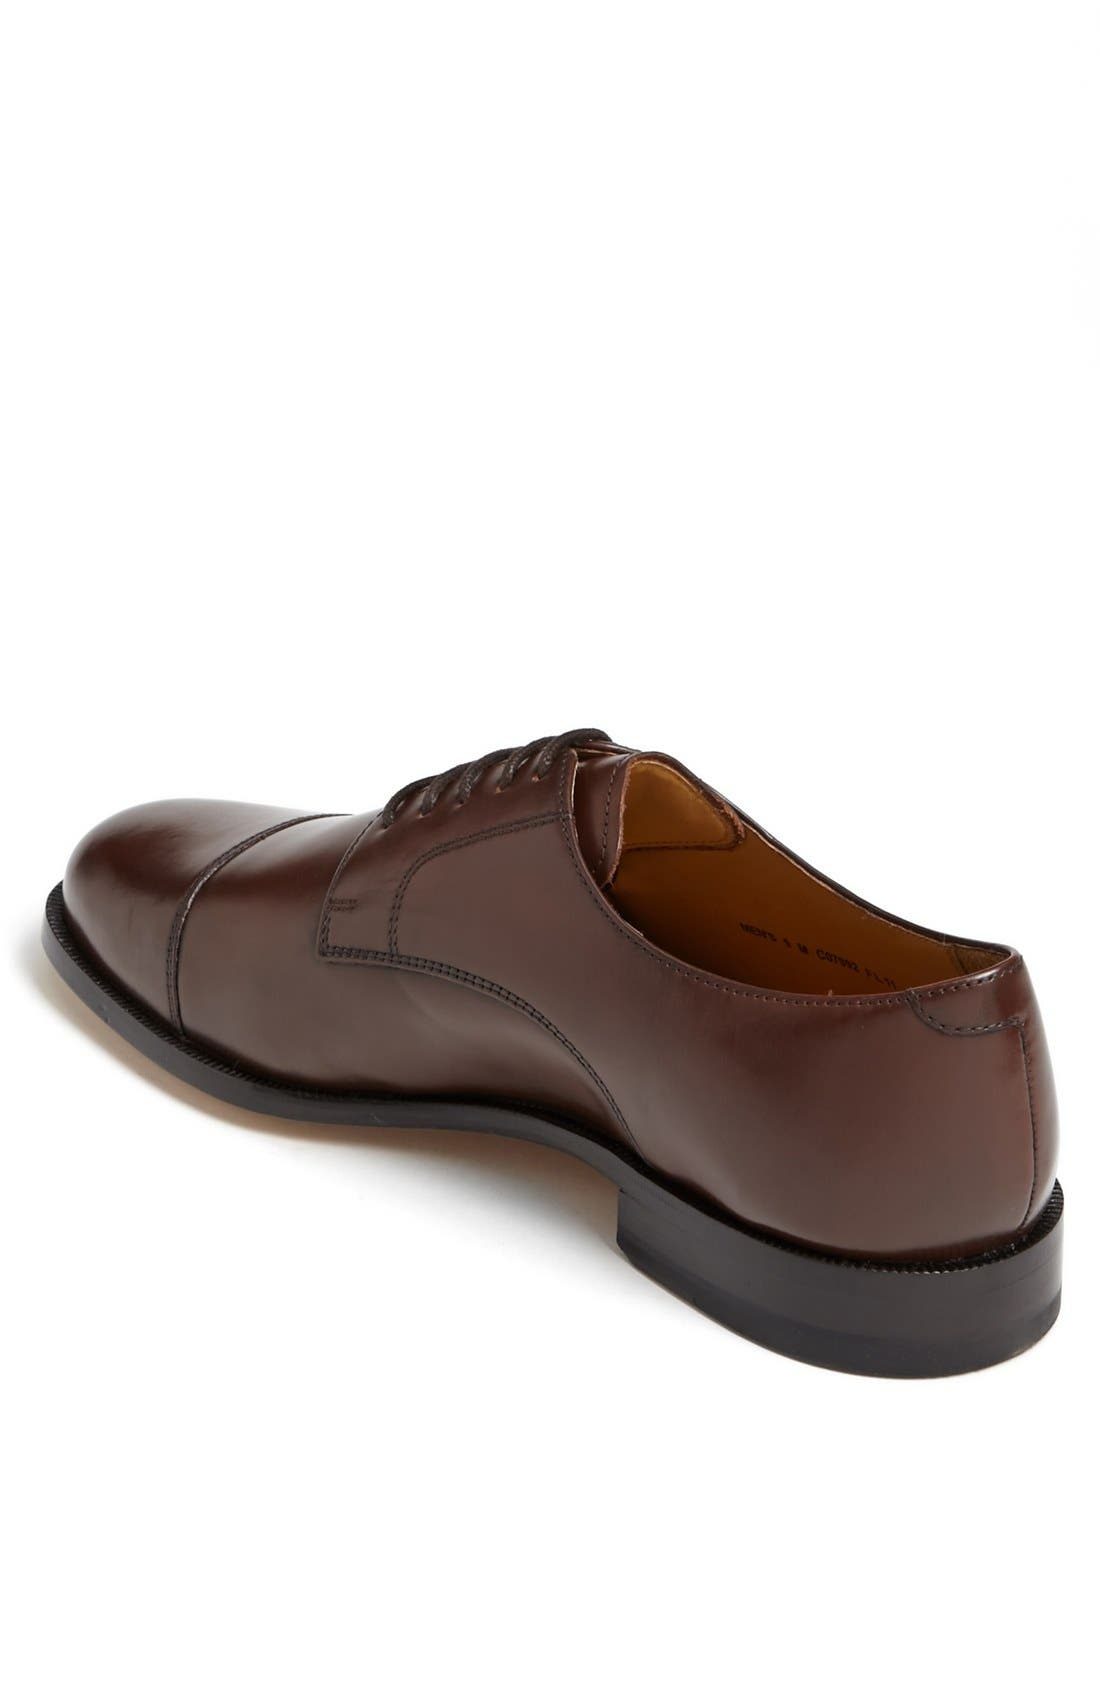 Alternate Image 2  - Cole Haan 'Cassady' Cap Toe Derby   (Men)